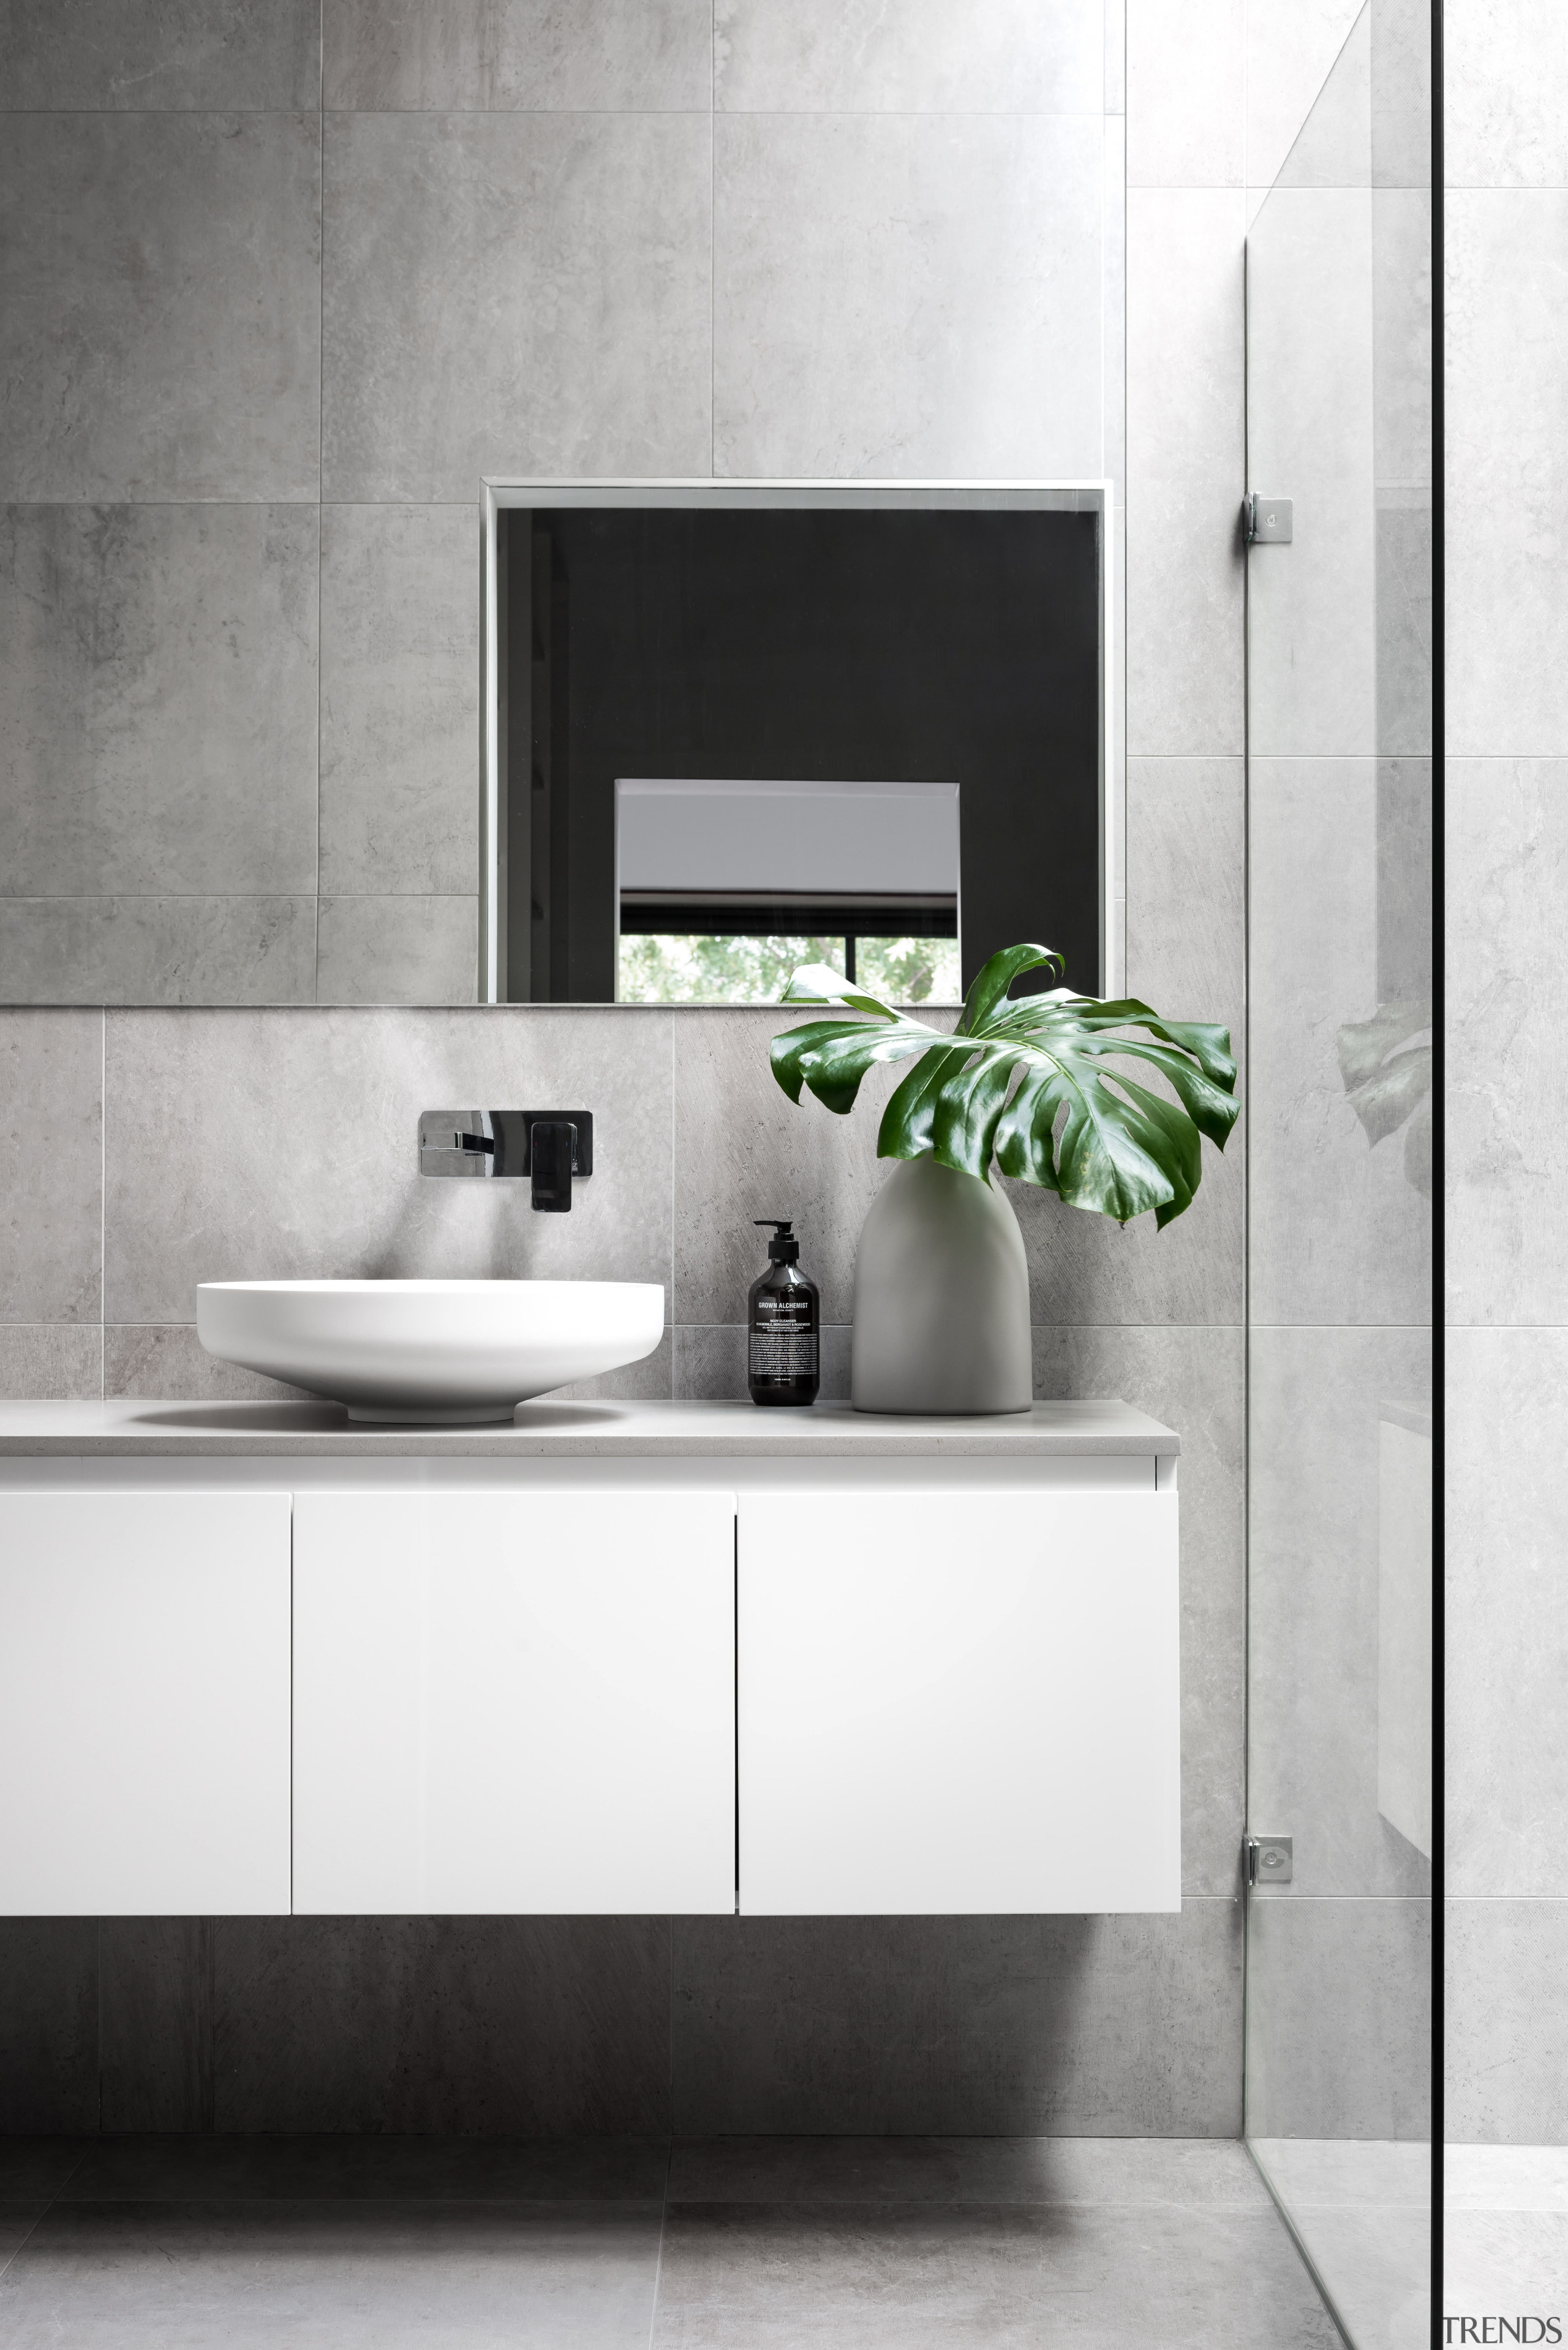 This new master ensuite in a reworked and bathroom, bathroom accessory, bathroom cabinet, ceramic, countertop, floor, interior design, product, product design, sink, tap, white, gray